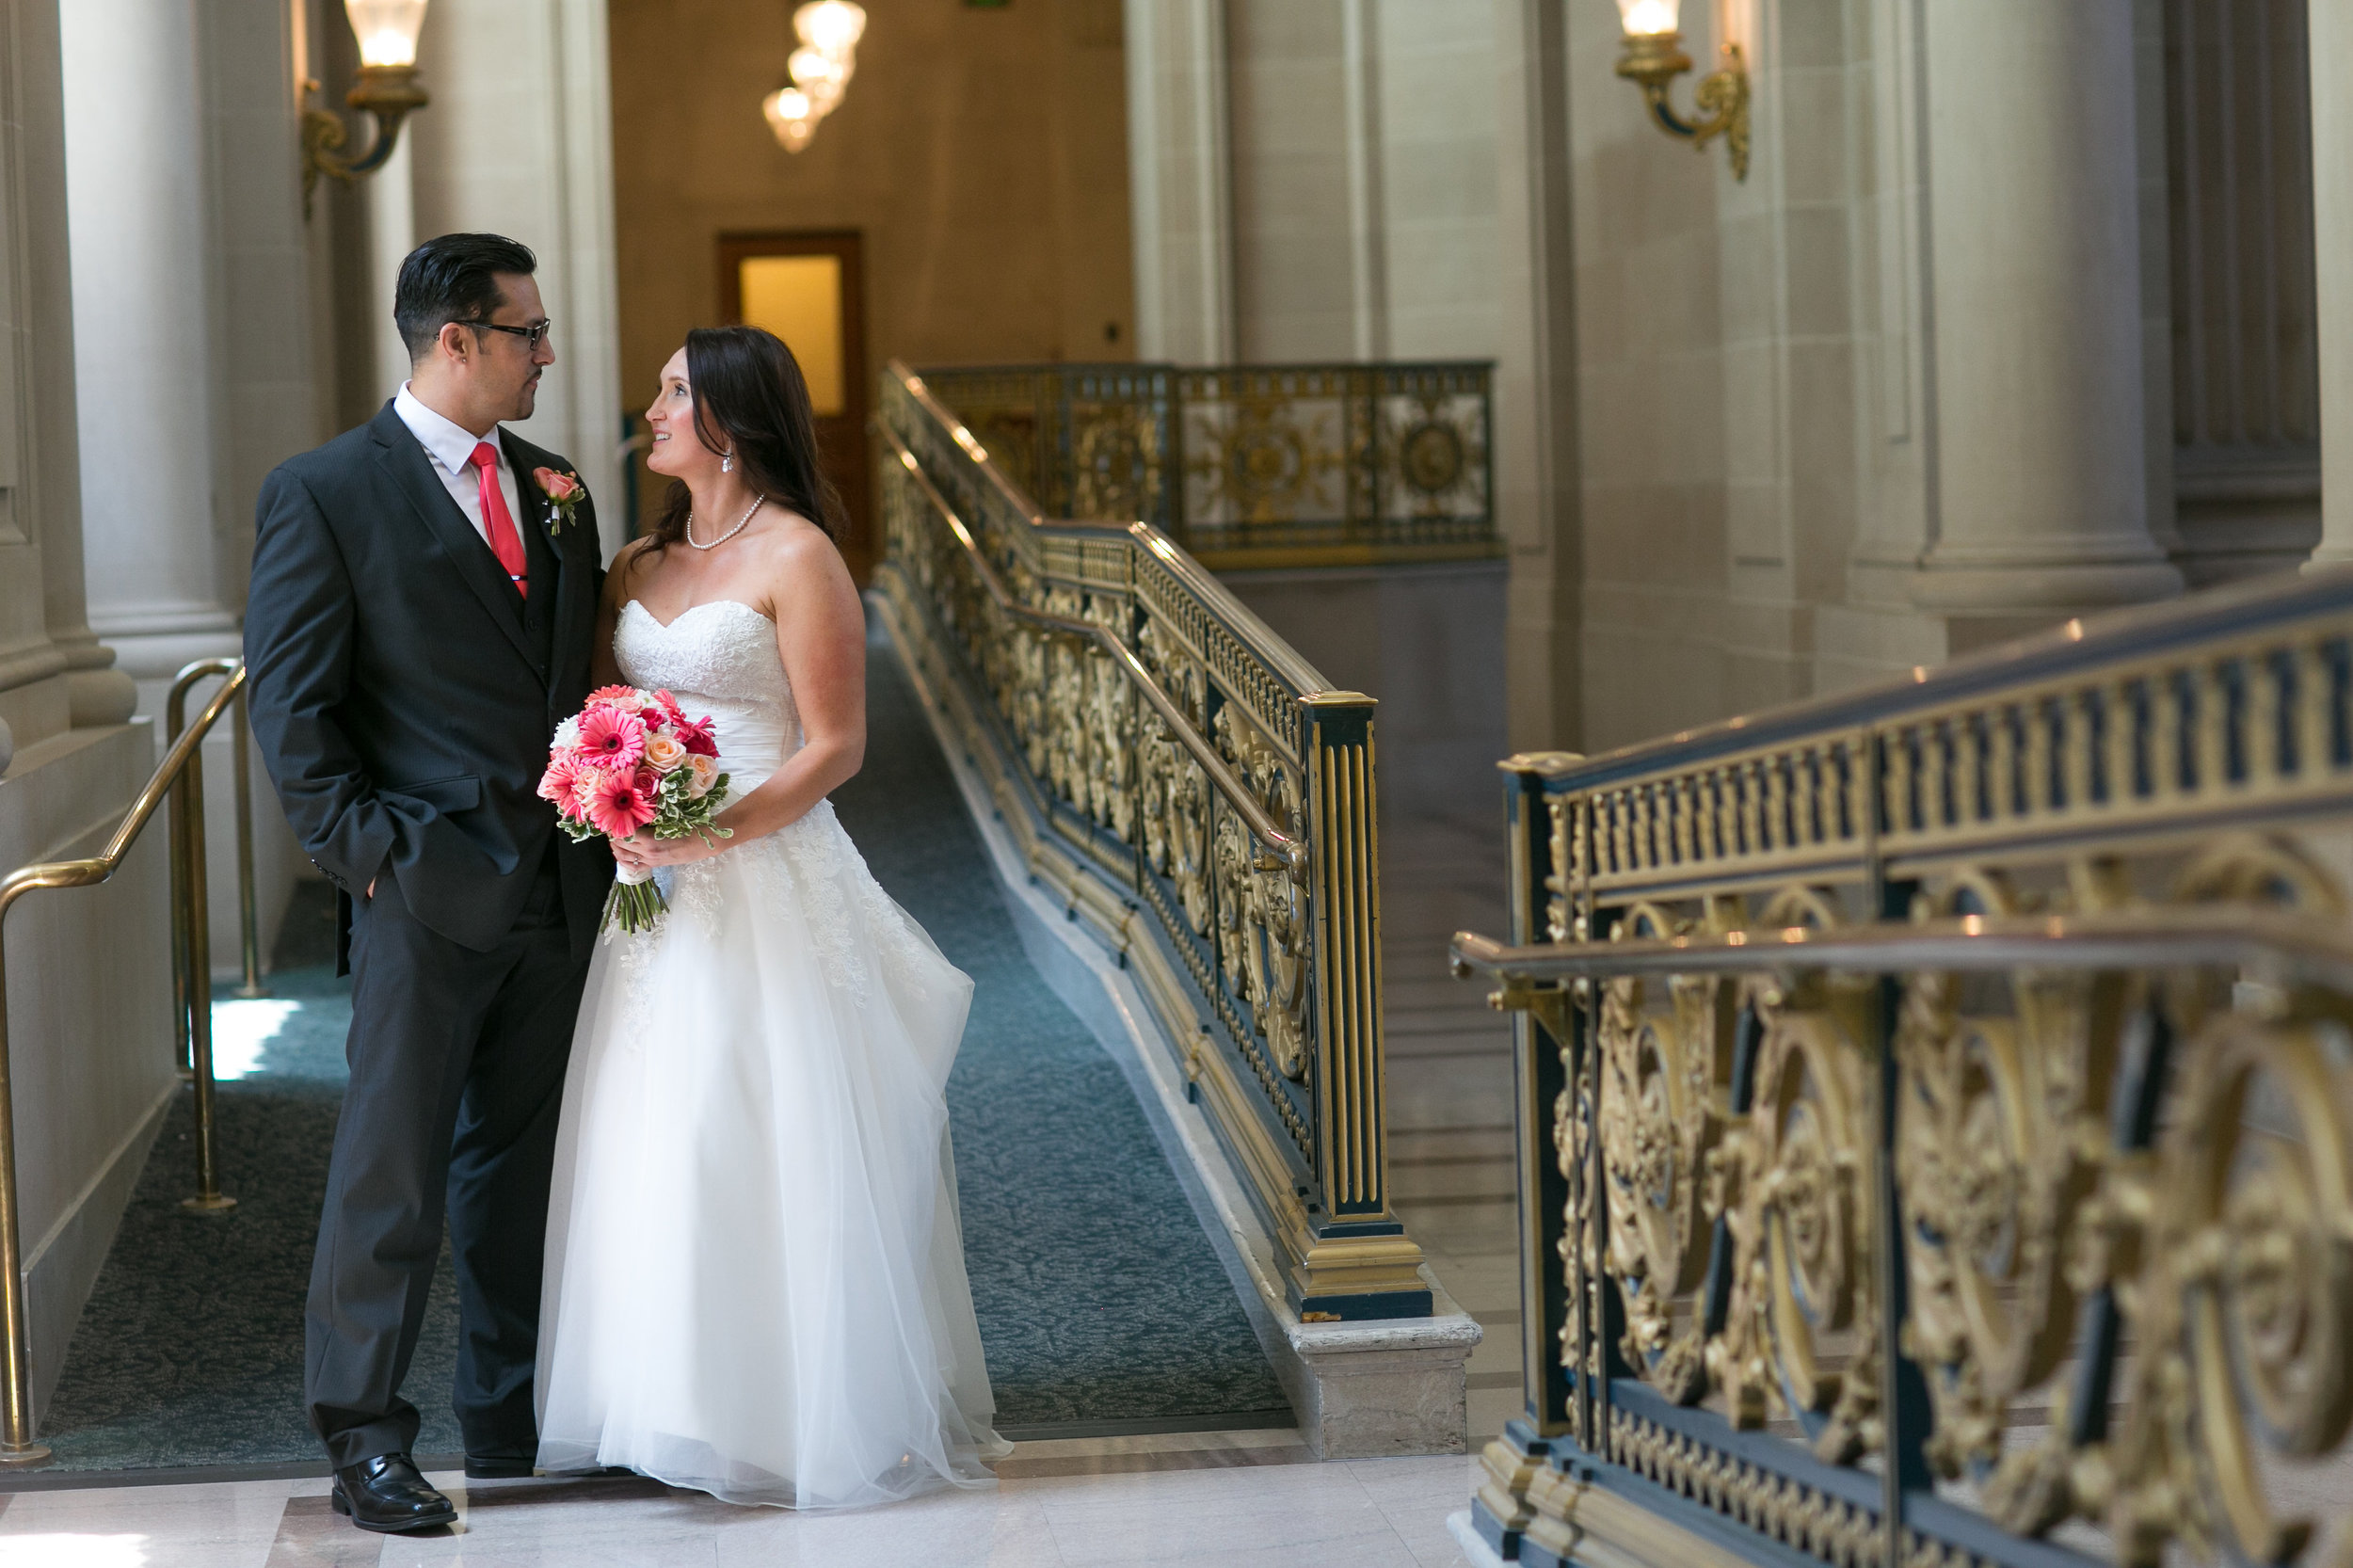 san francisco city hall wedding david kim photography 1.jpg